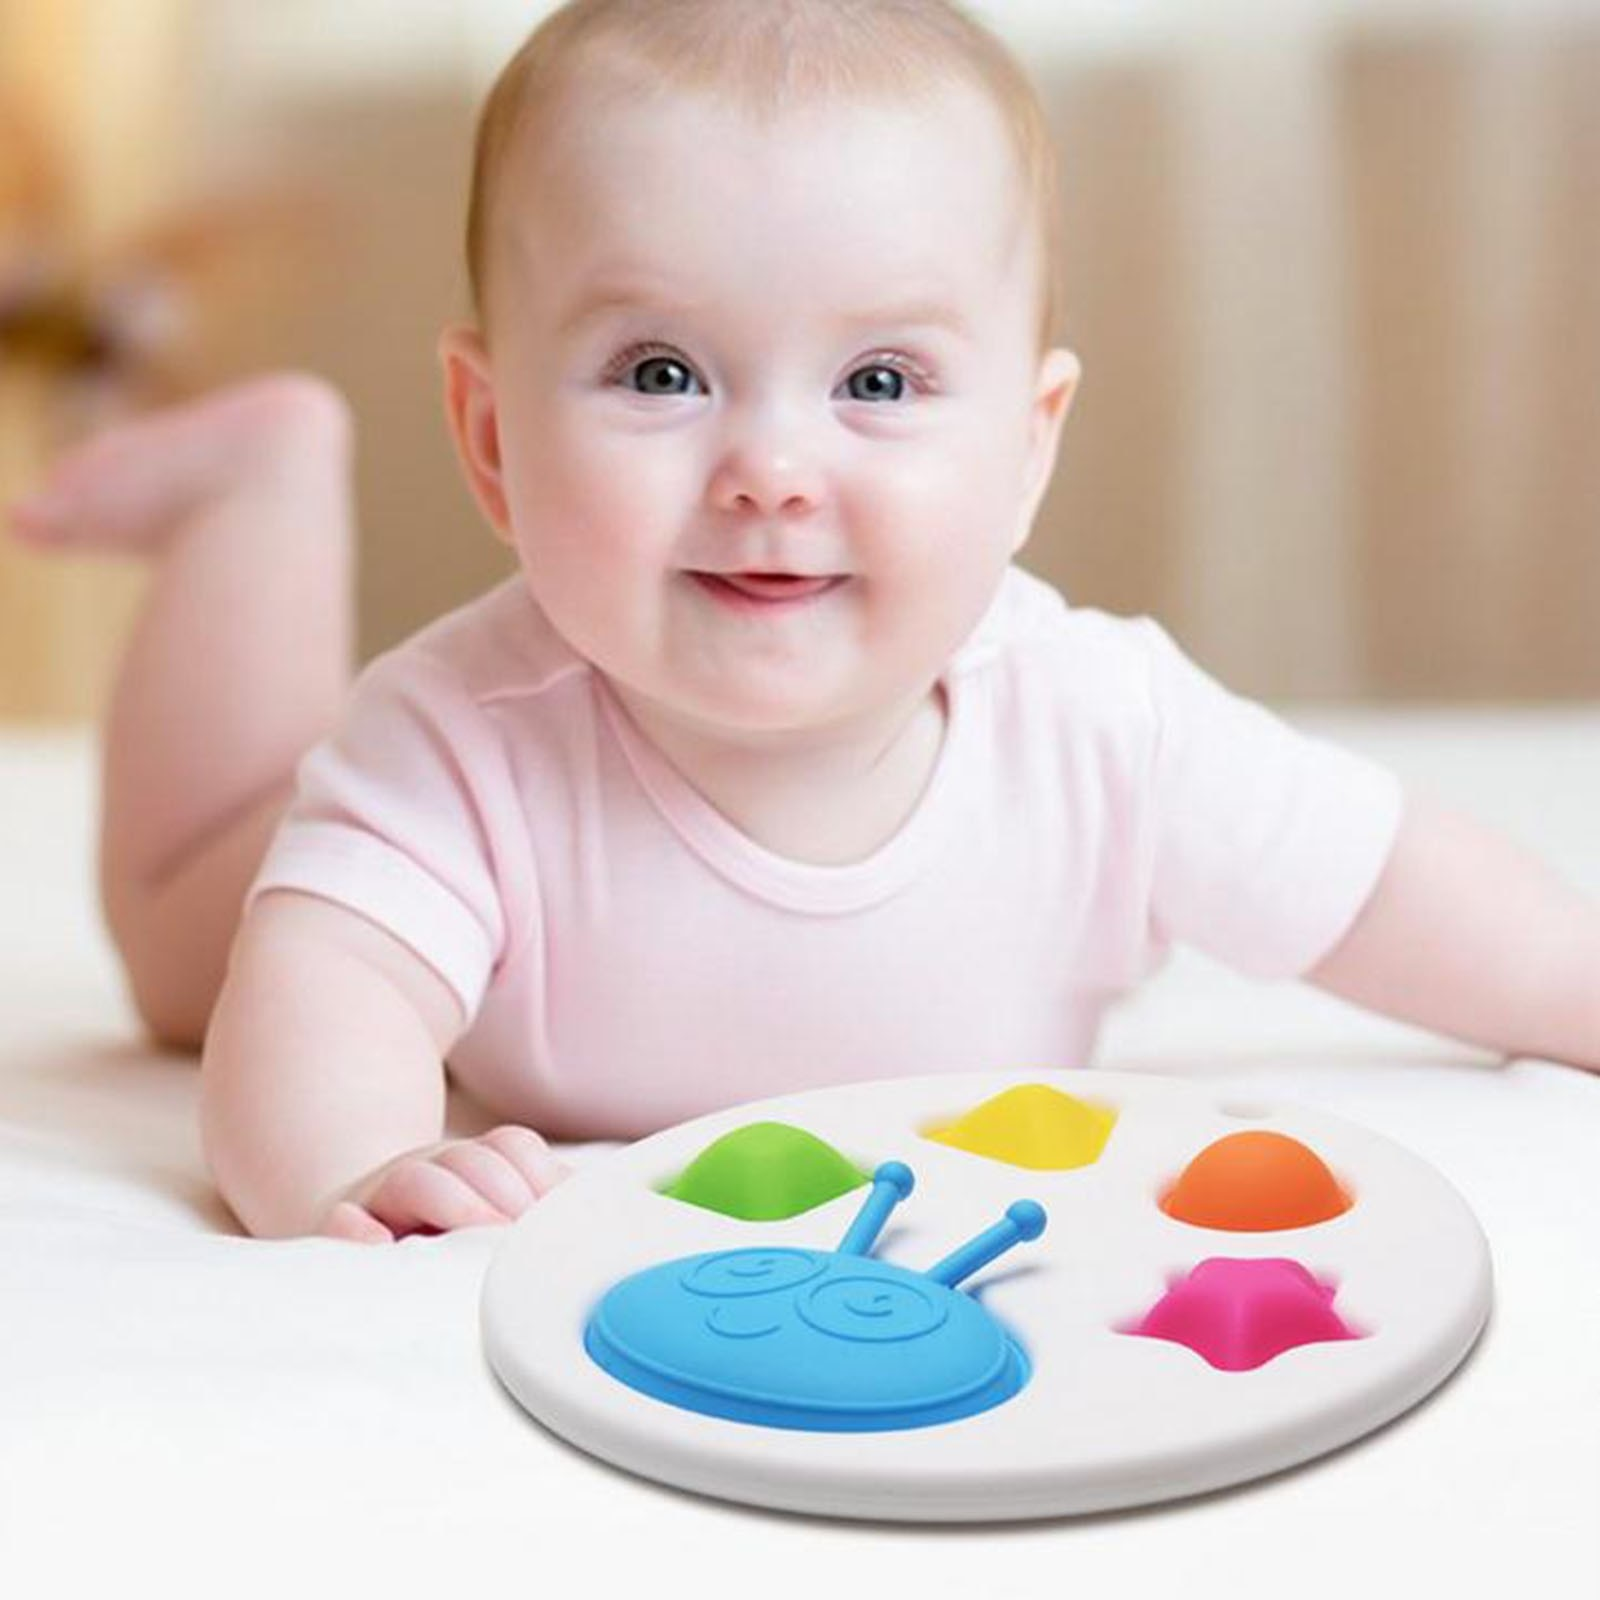 Baby Squeeze Fidget Sensory Toys Brain Development Enlightenment Early Education Montessori Training Board Toys Stress Relief 5* enlarge